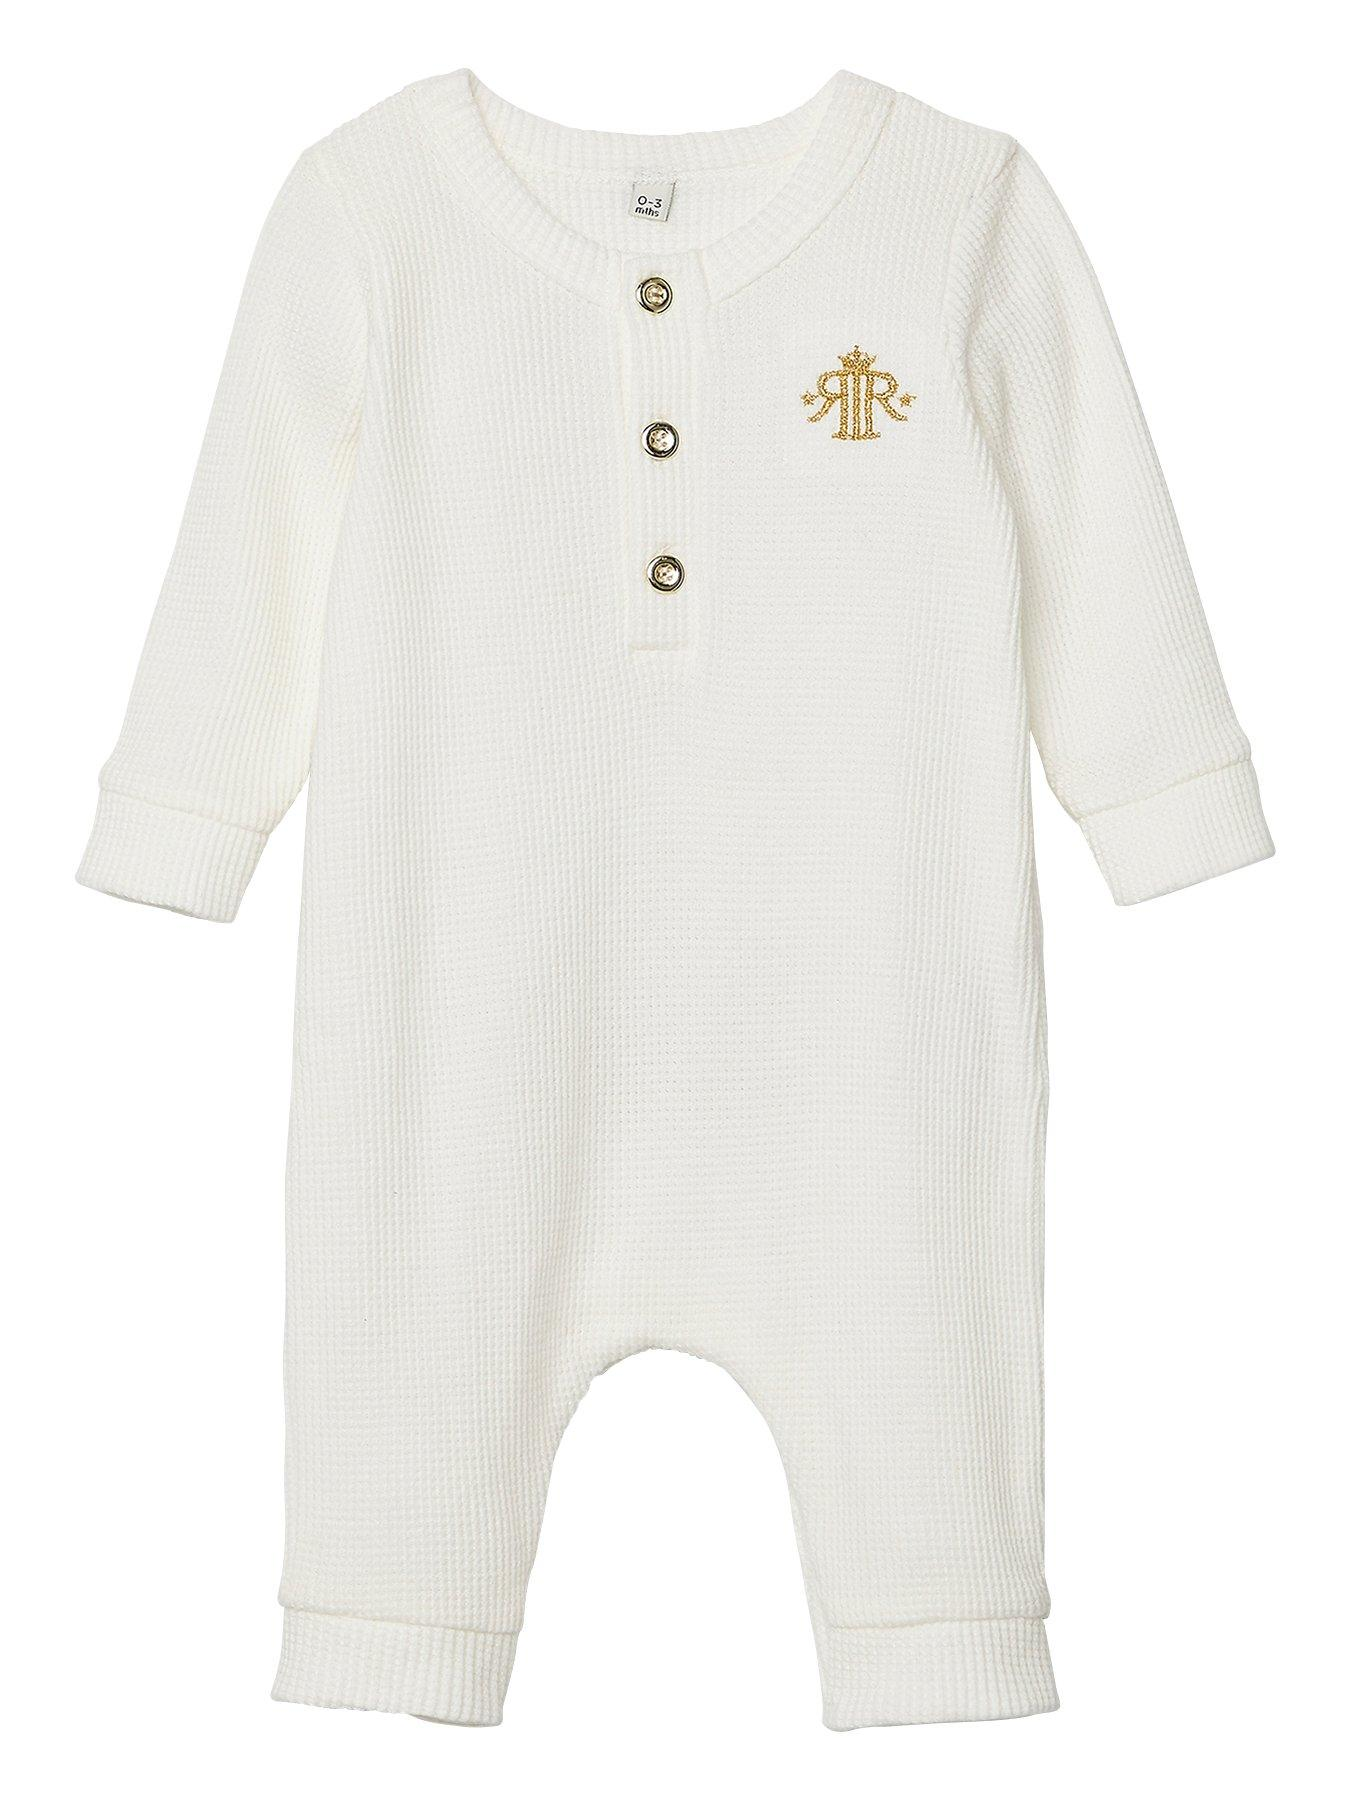 Mamas /& Papas Baby Girls Heart Embriodered All-in-one Romper